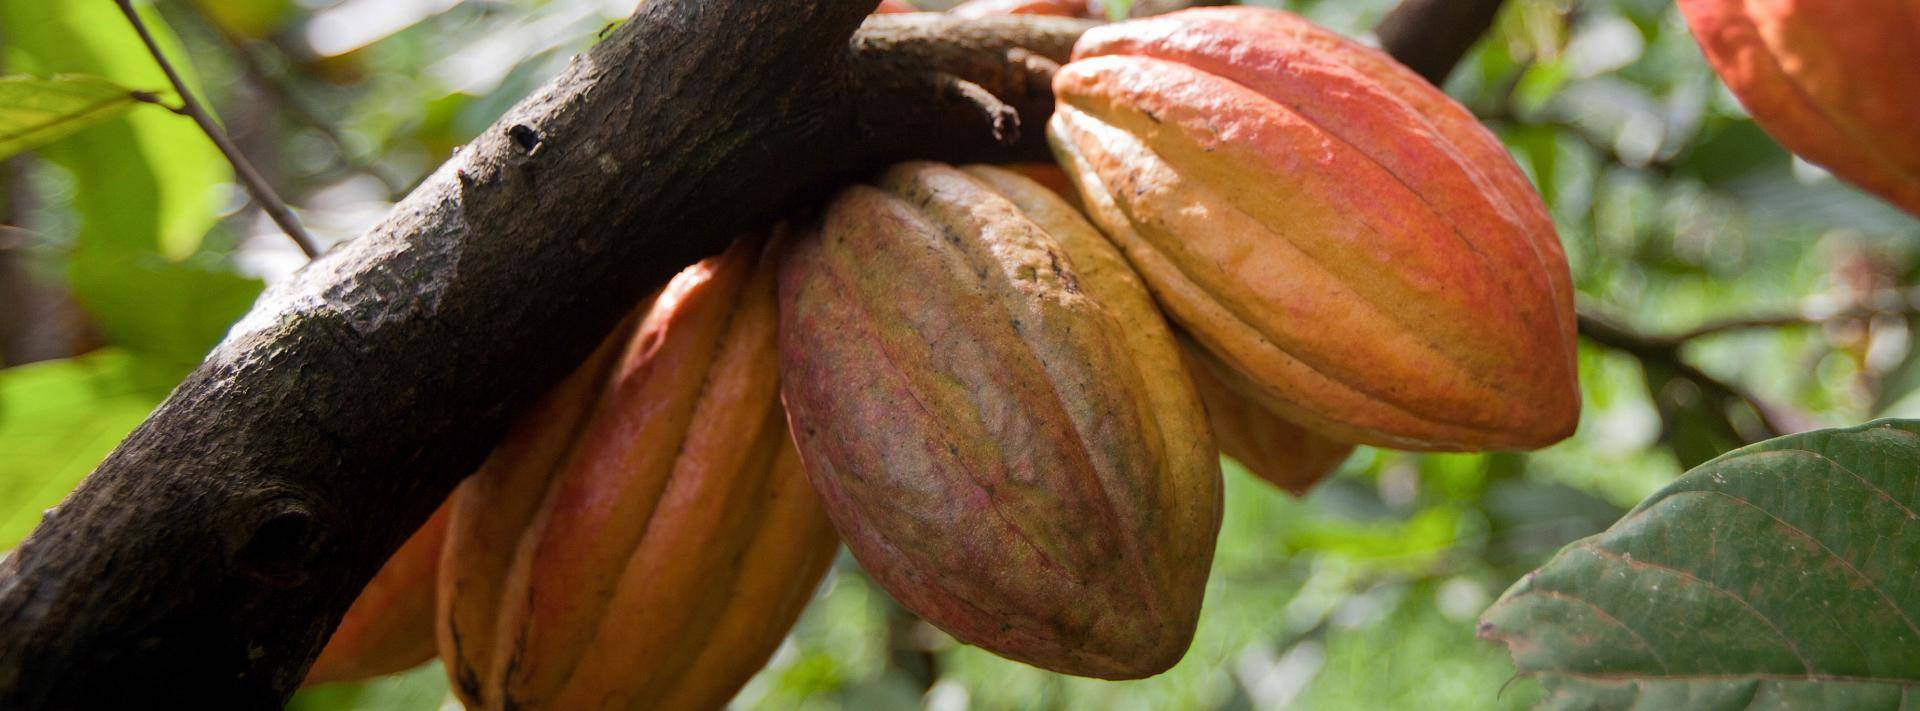 Cocoa pods from Cameroon